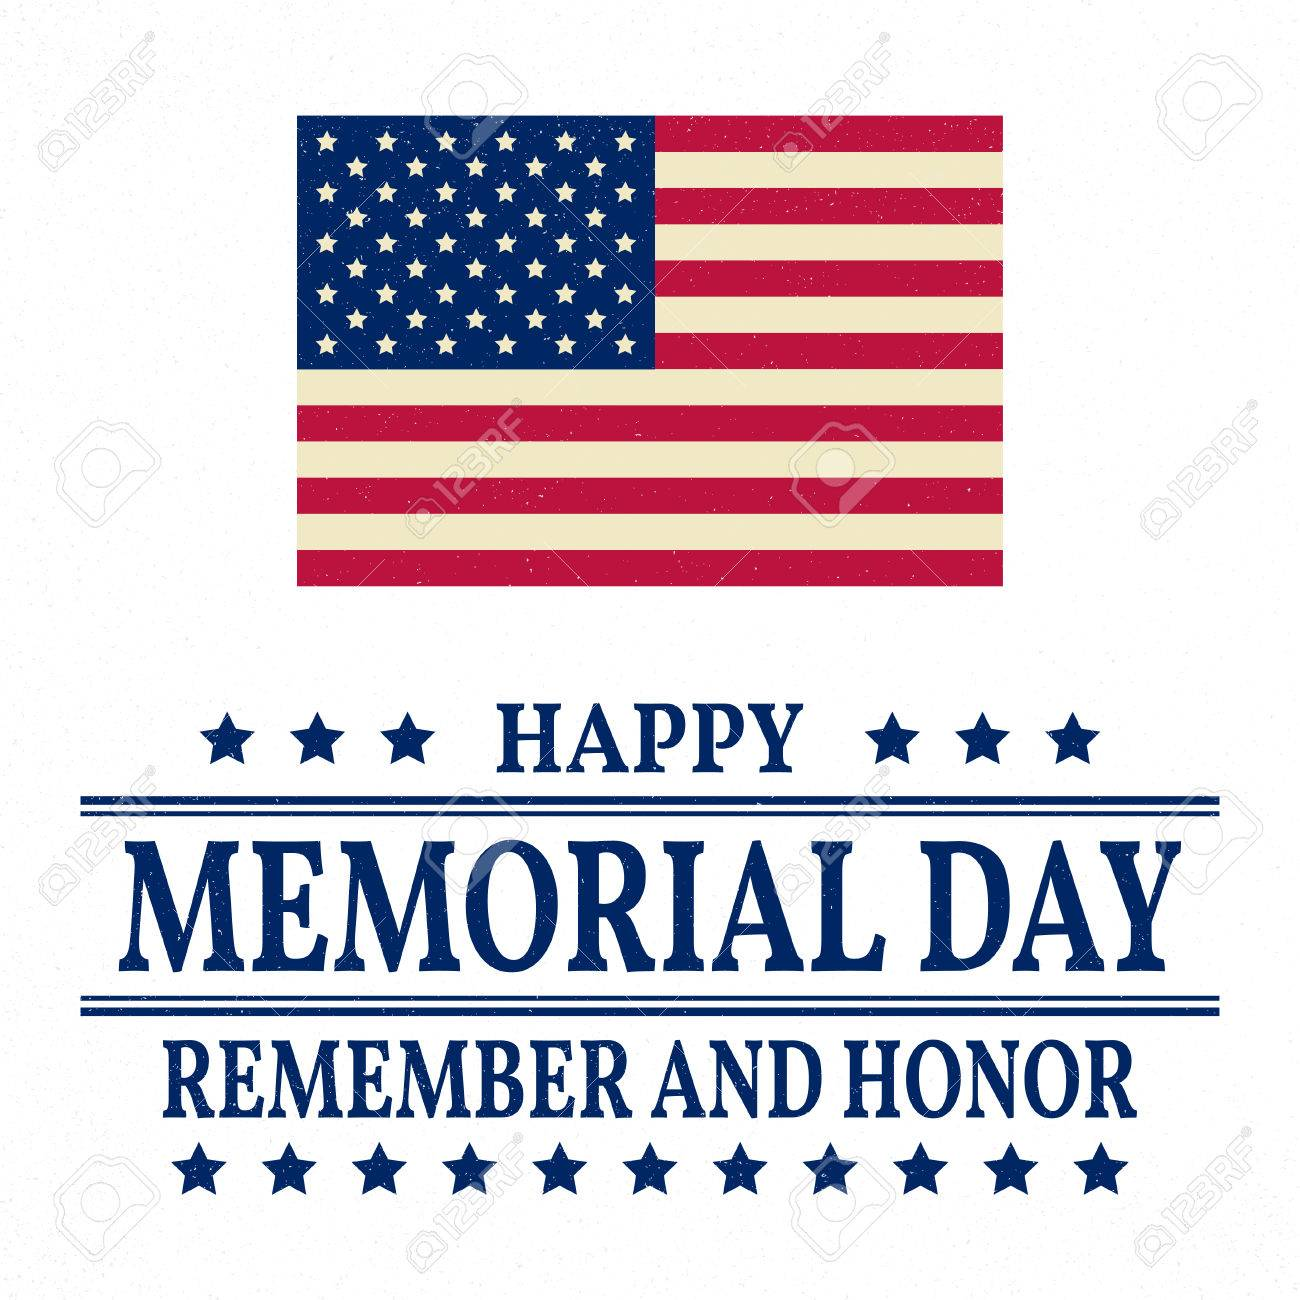 Happy Memorial Day background template. Happy Memorial Day poster.